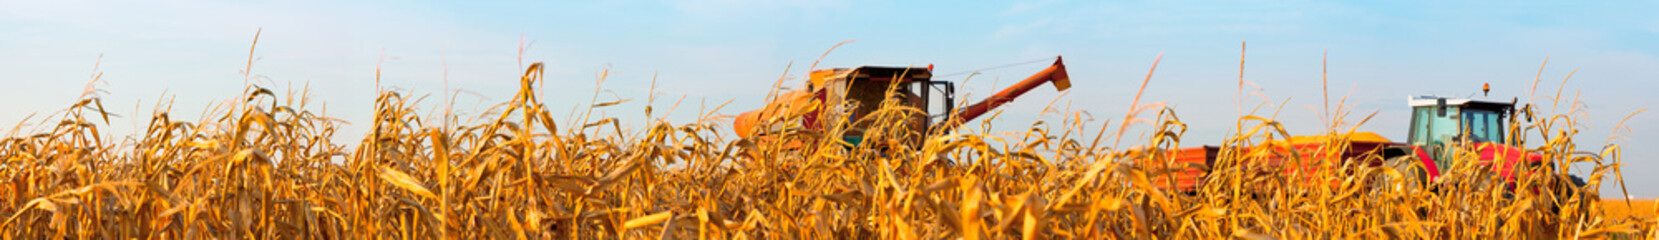 Panorama of the Corn Field with Harvest Combine and Tractor